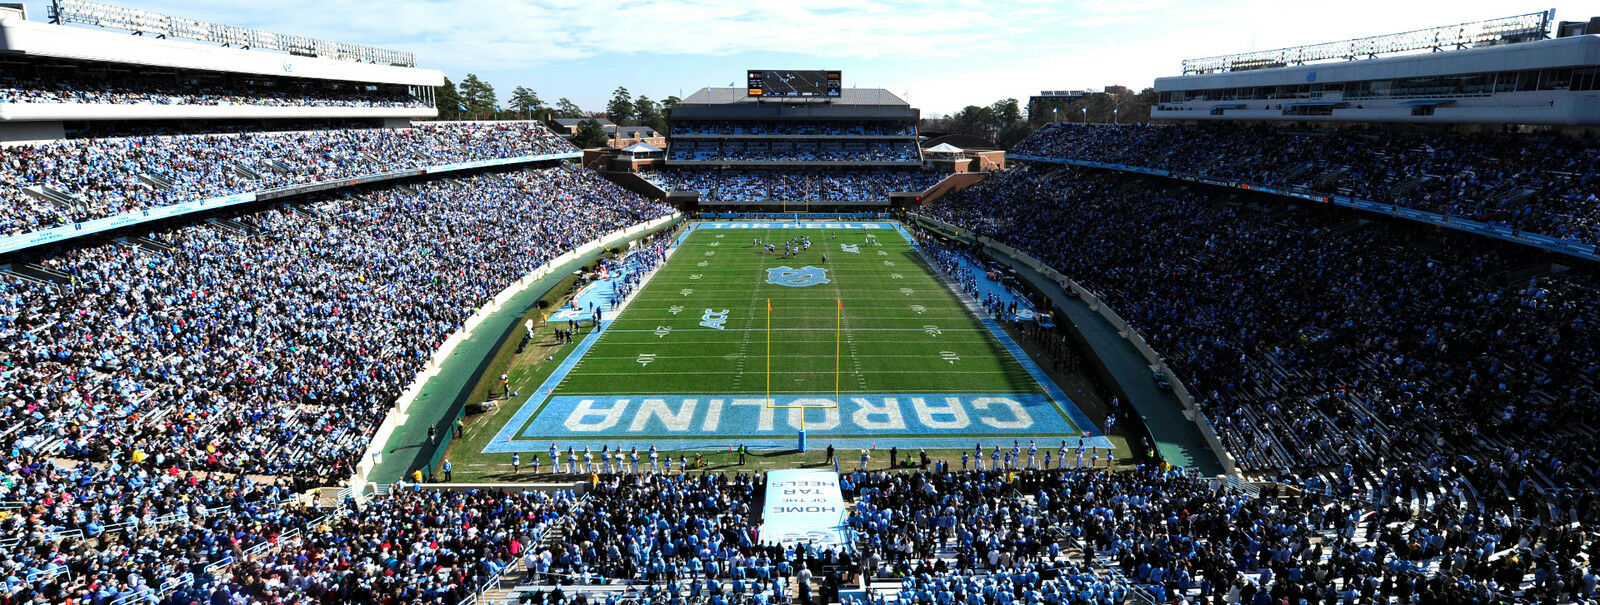 Cal Bears at North Carolina Tar Heels Football